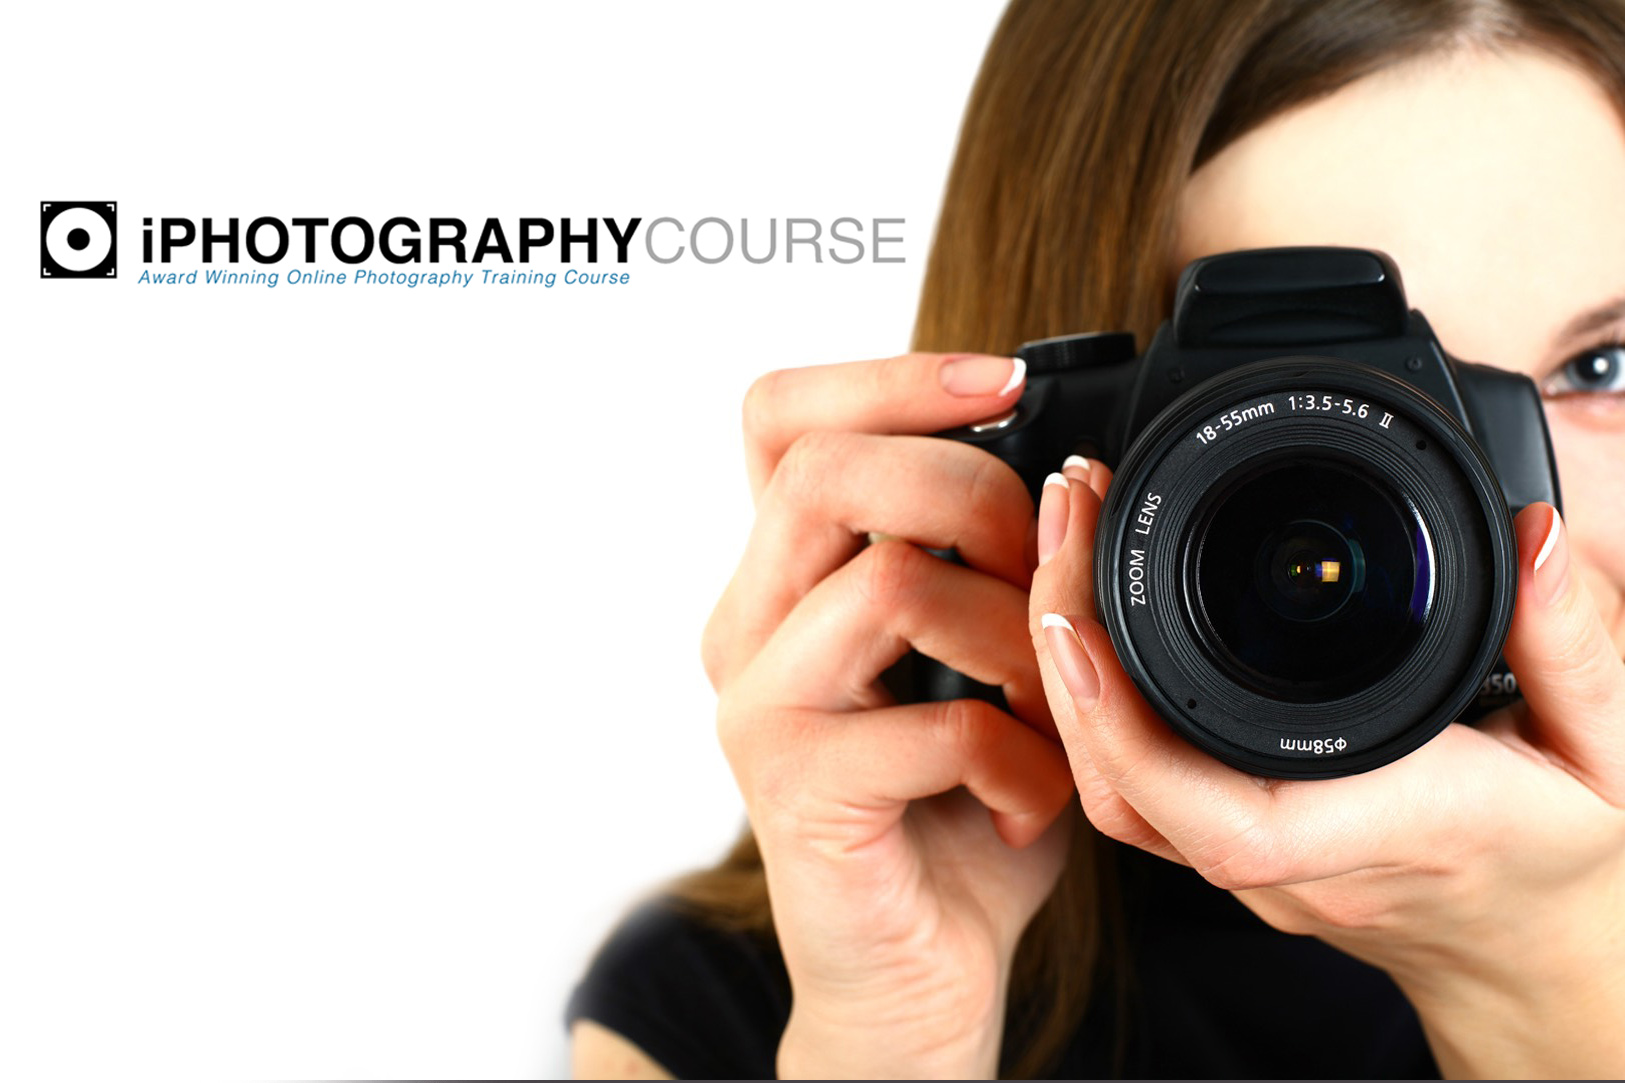 lady camera lens face #potd #weekendchallenge iphotography guide win award social interaction photography training